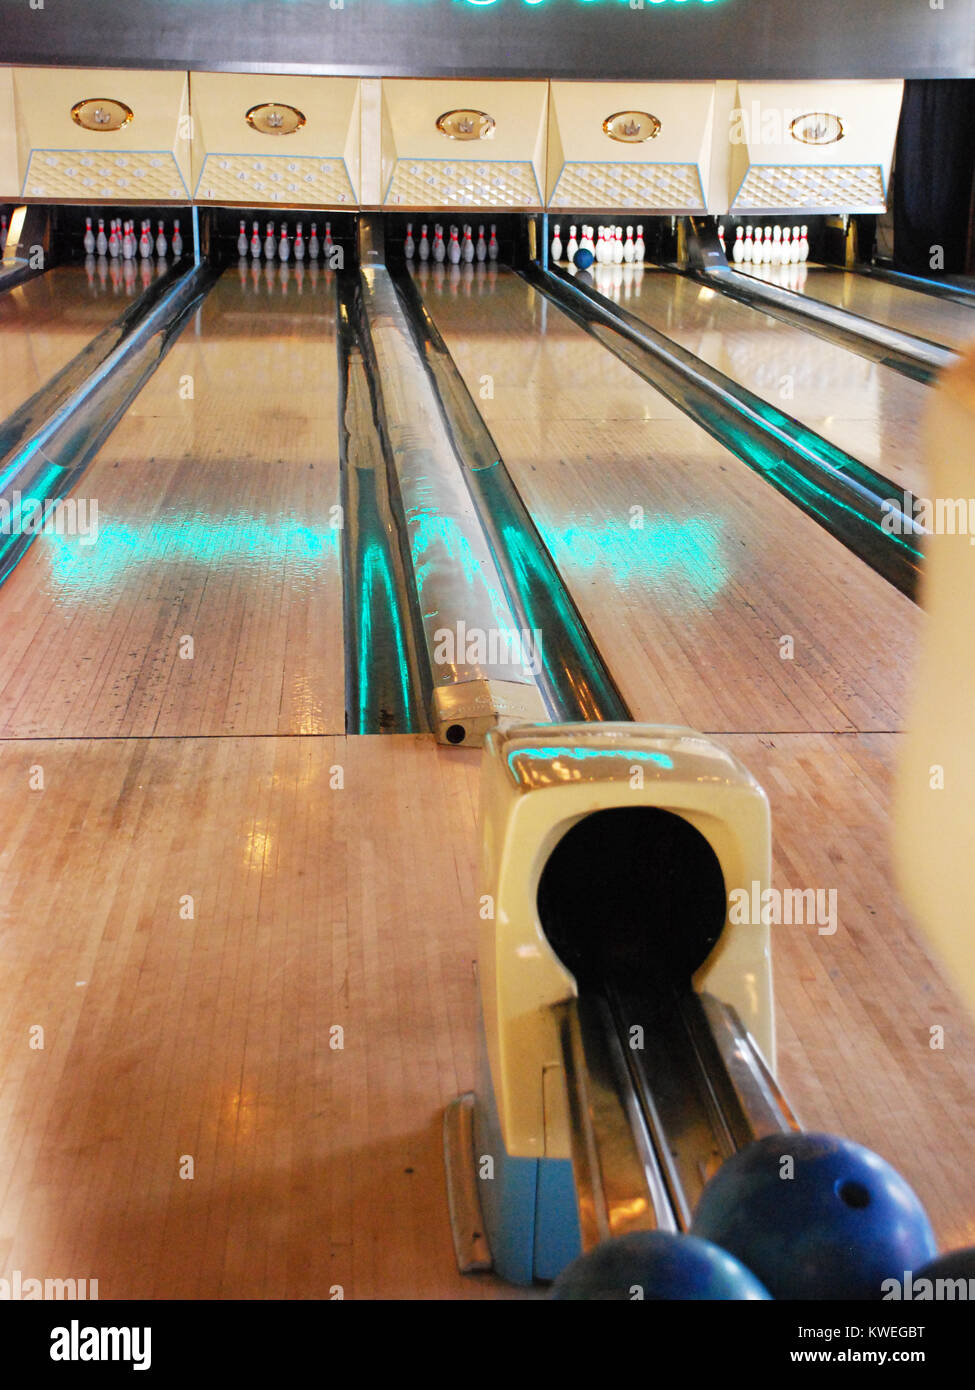 Vintage bowling alley in Nashville, TN USA - Stock Image